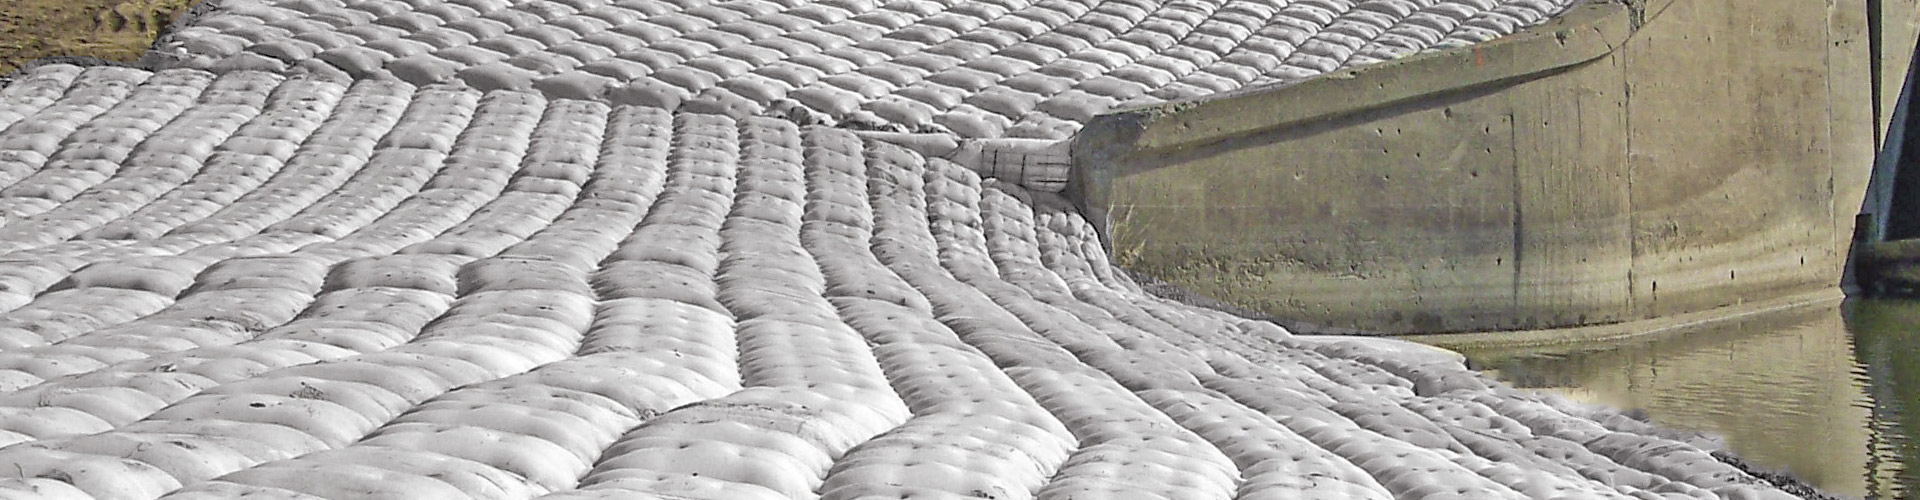 unimat, scour and erosion repairs, fabric formed articulating grout mats, erosion protection